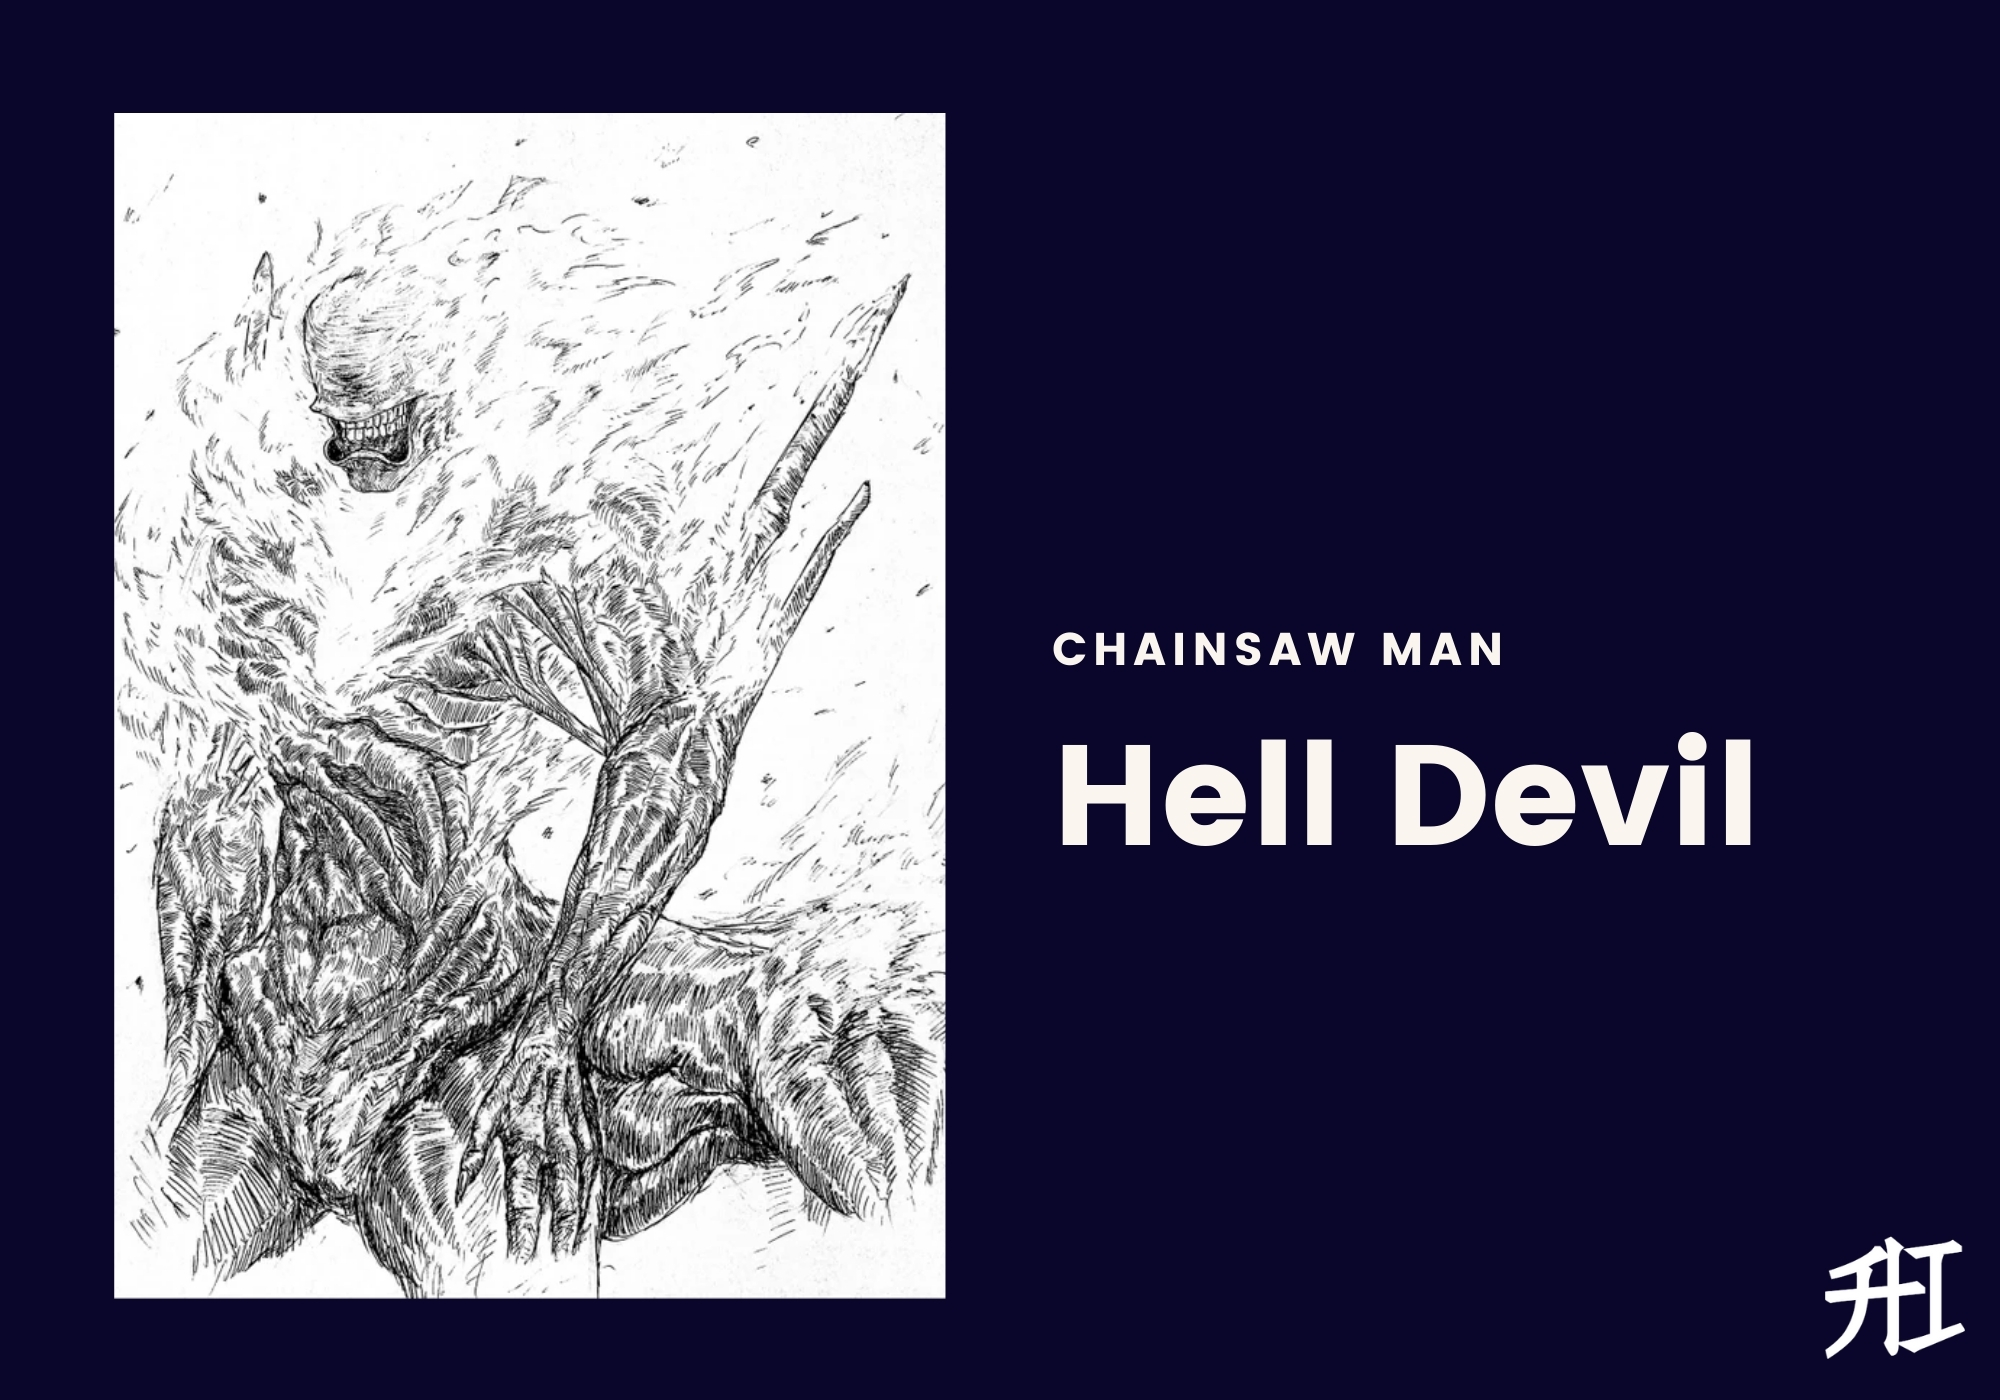 Hell Devil - Chainsaw Man